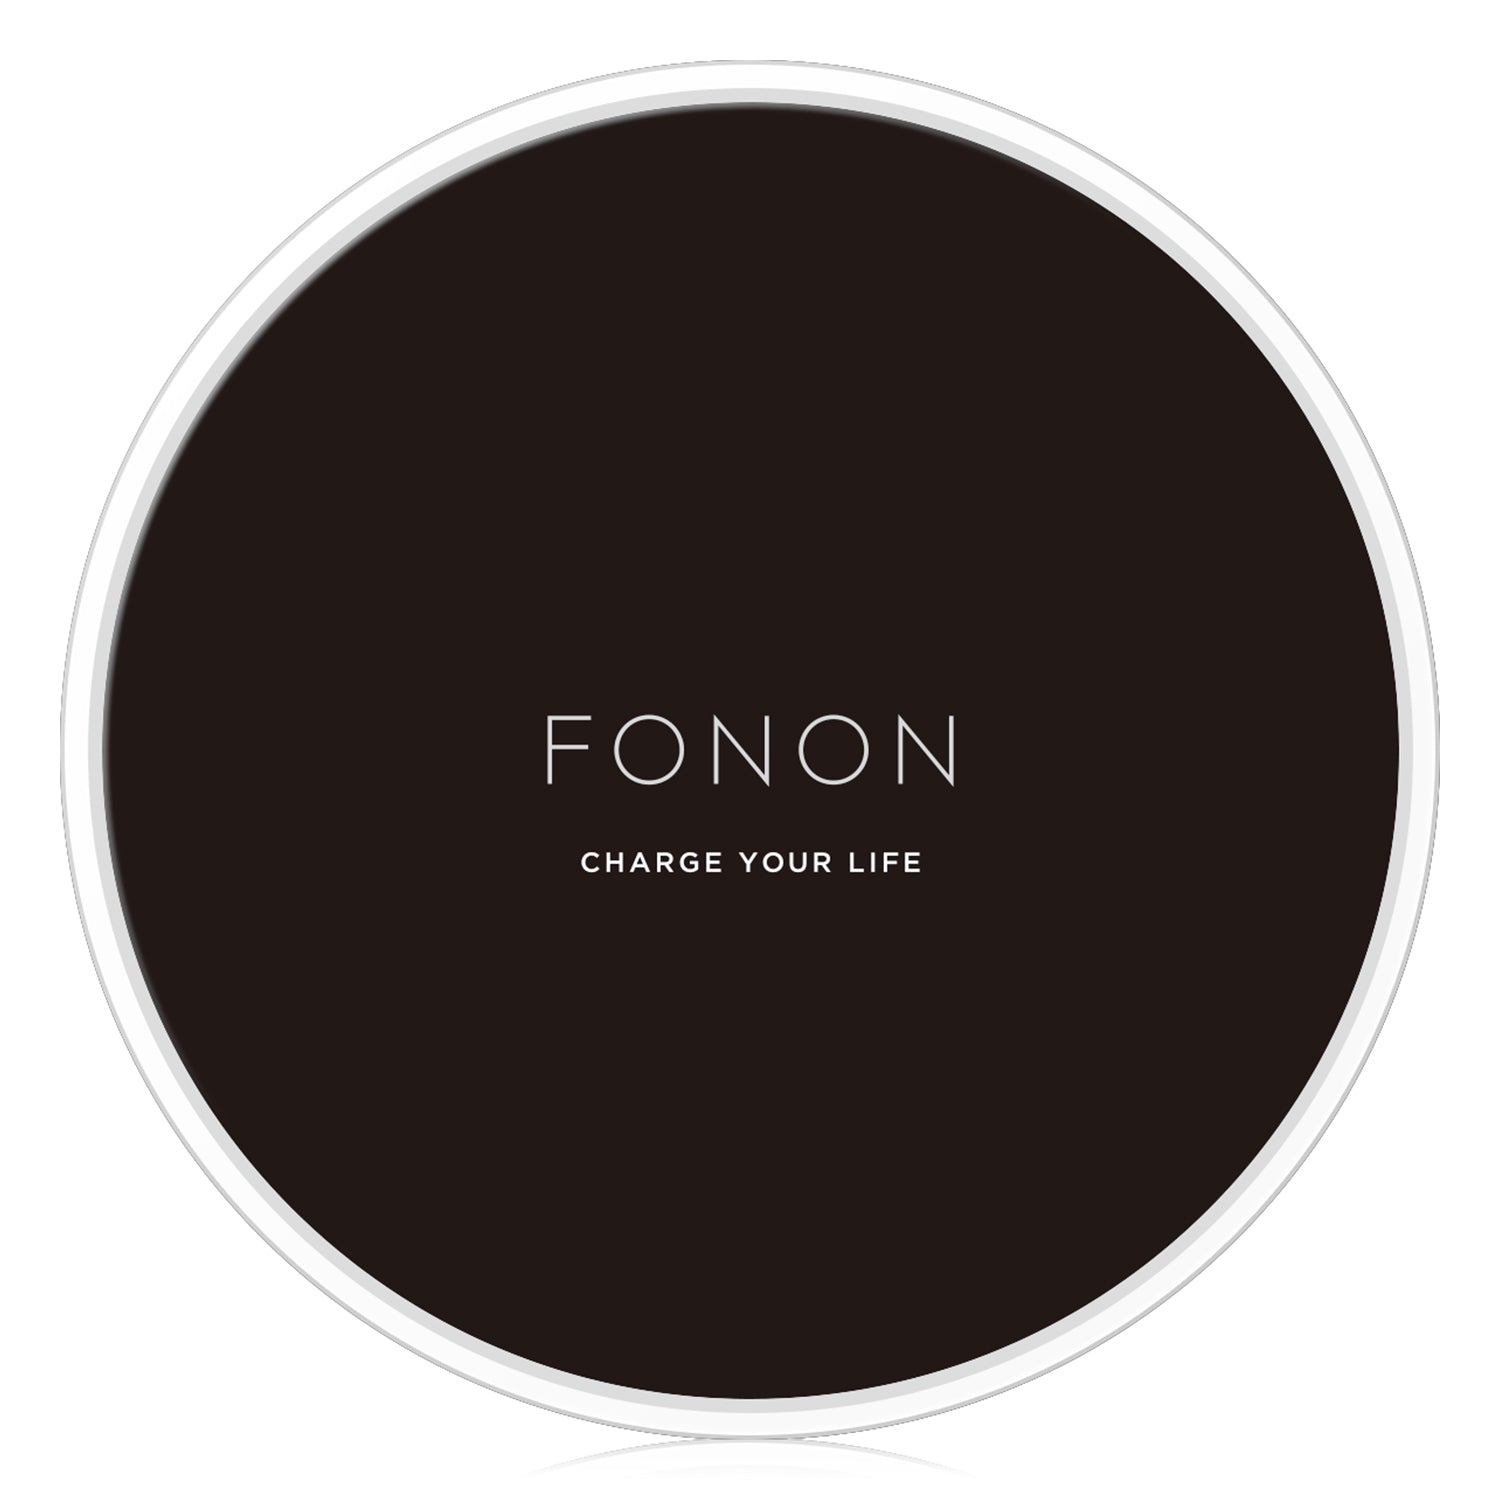 WIRELESS CHARGING BASE - TYPO SERIES - FONON CHARGE YOUR LIFE Black